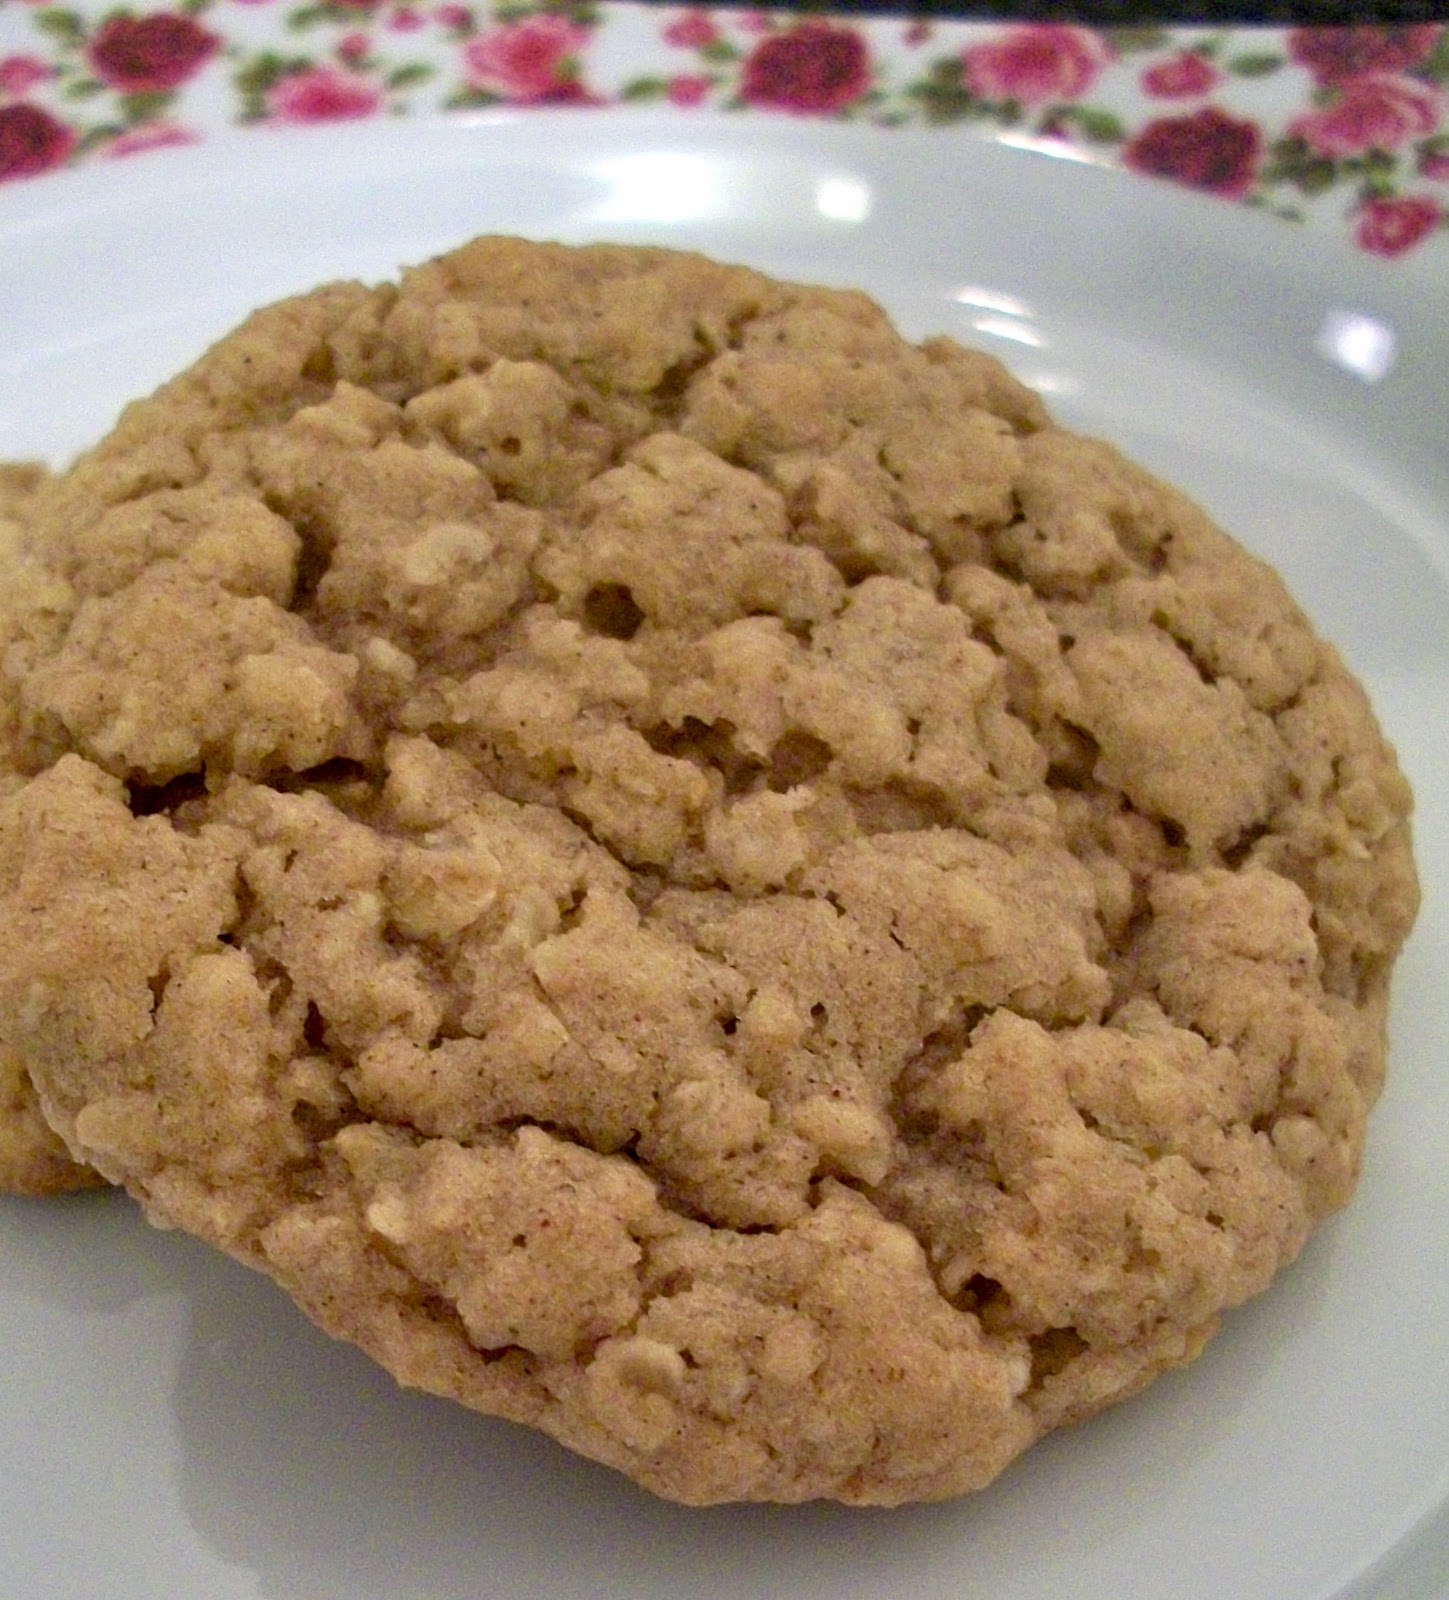 Brooke Bakes : Apple Cinnamon Instant Oatmeal Cookies